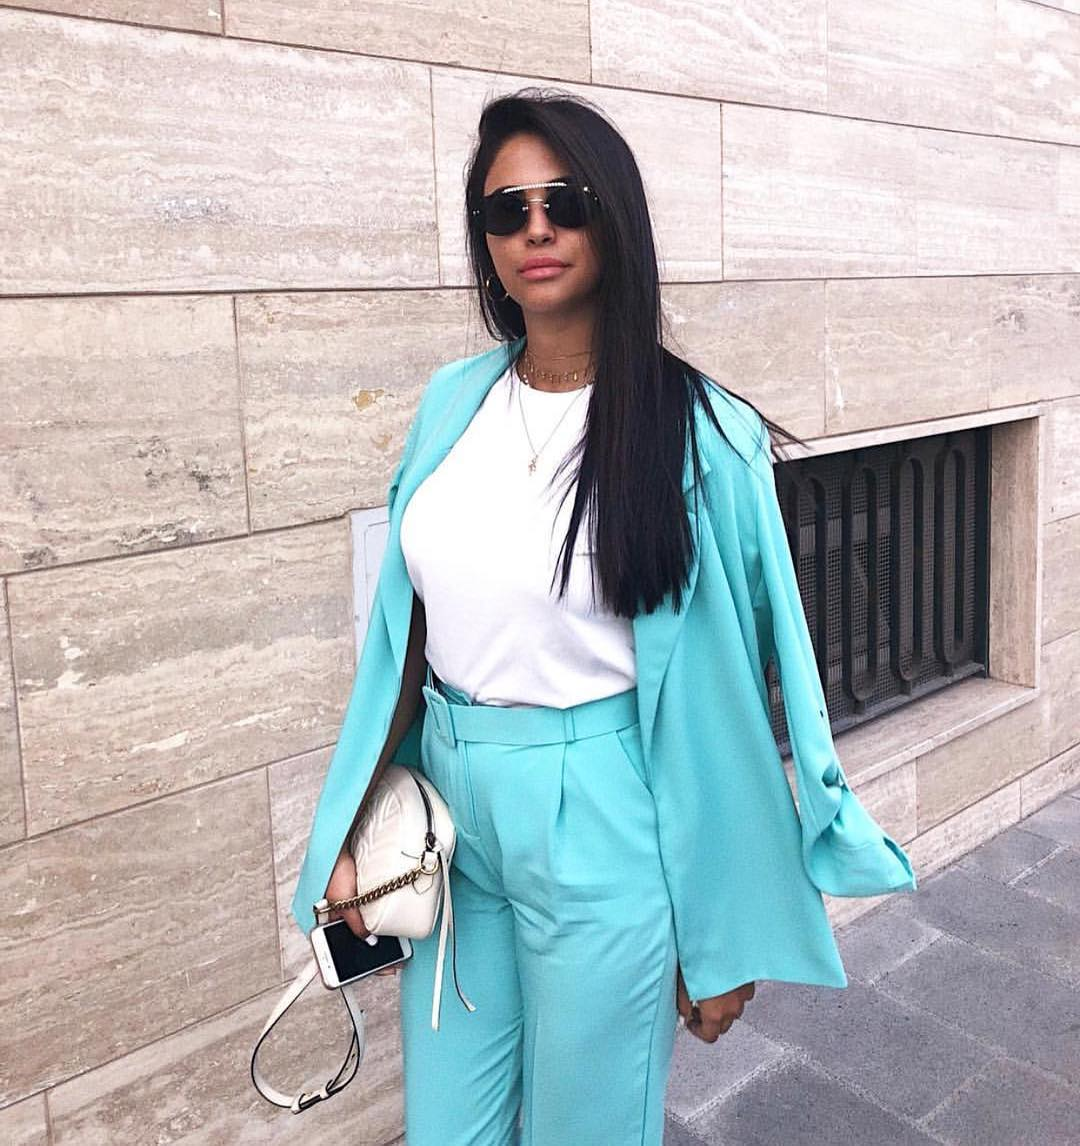 Neon Blue Pantsuit For Summer Glamour Street Walks 2019